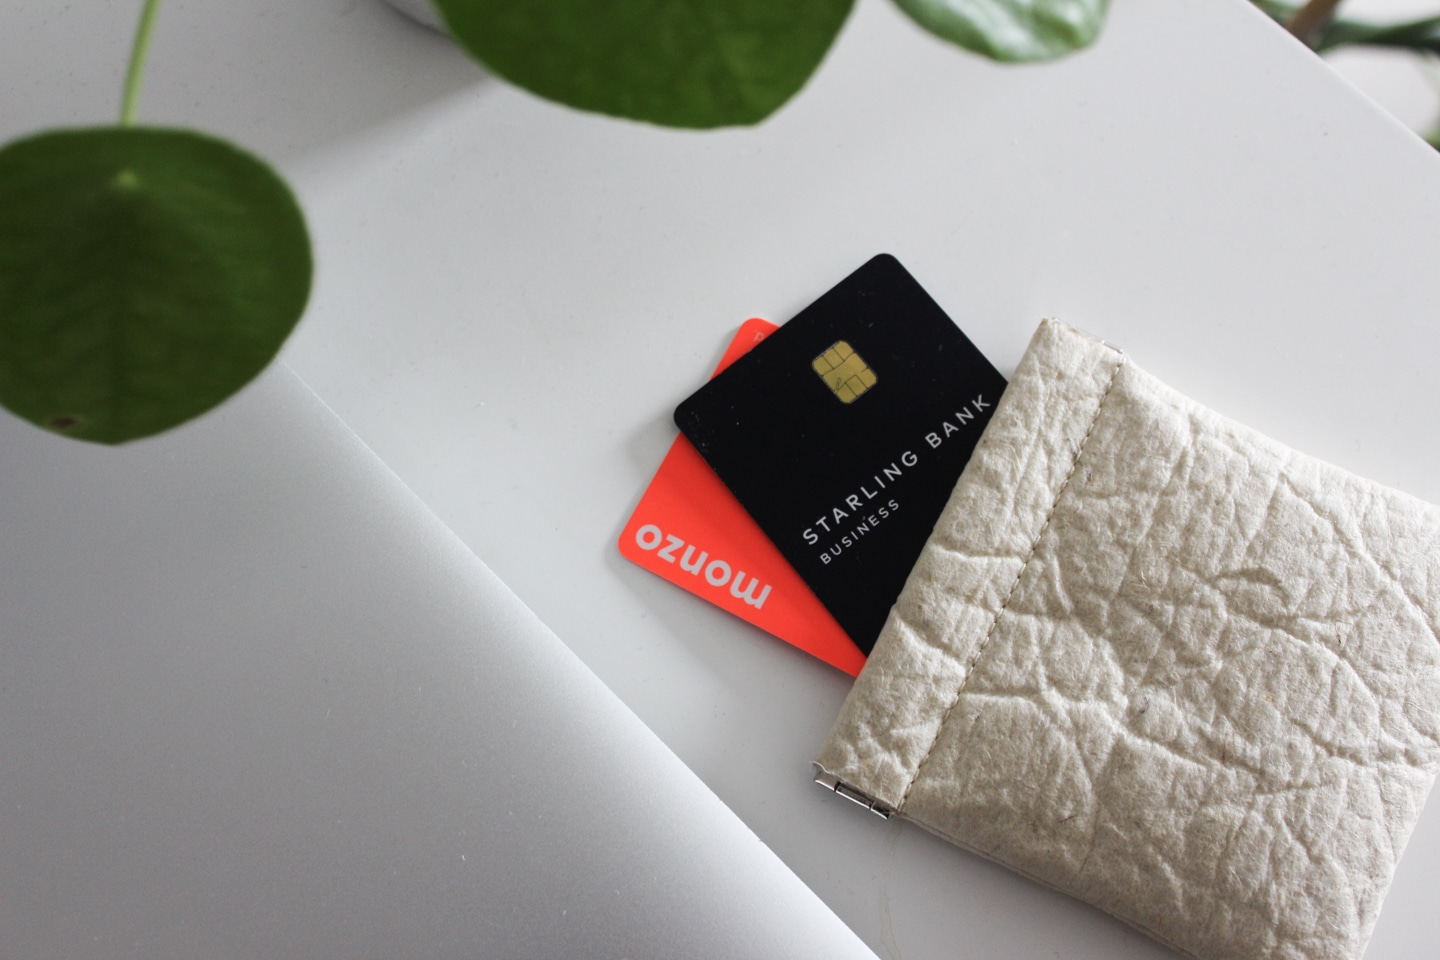 Starling Bank and Monzo cards in a purse